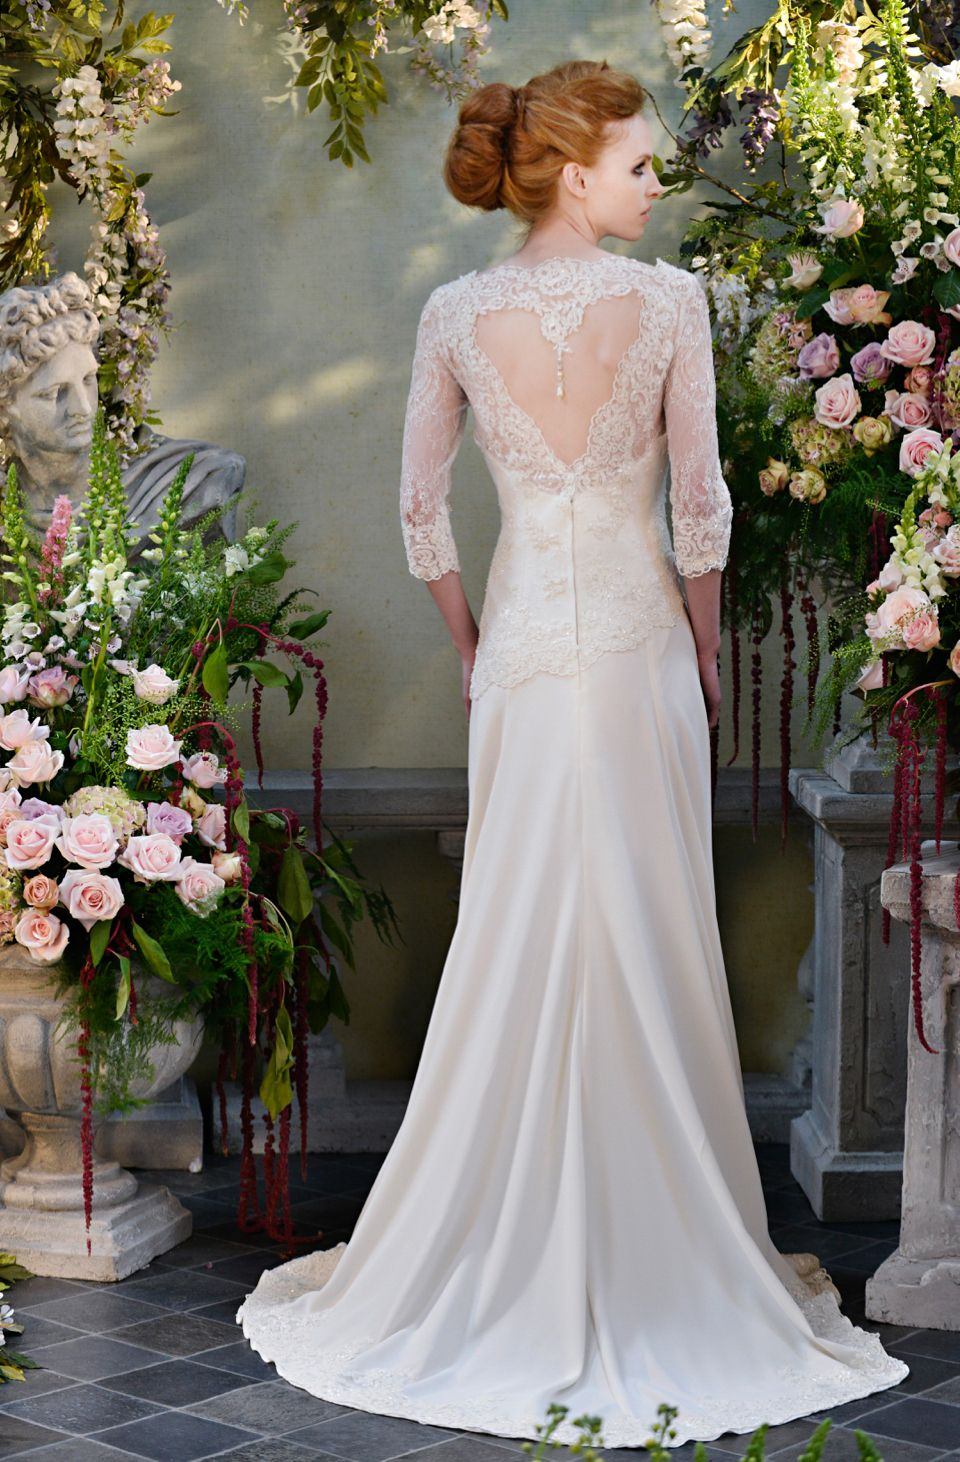 Siren Song - The 2015 Collection of Enchanting Bridal Gowns from ...